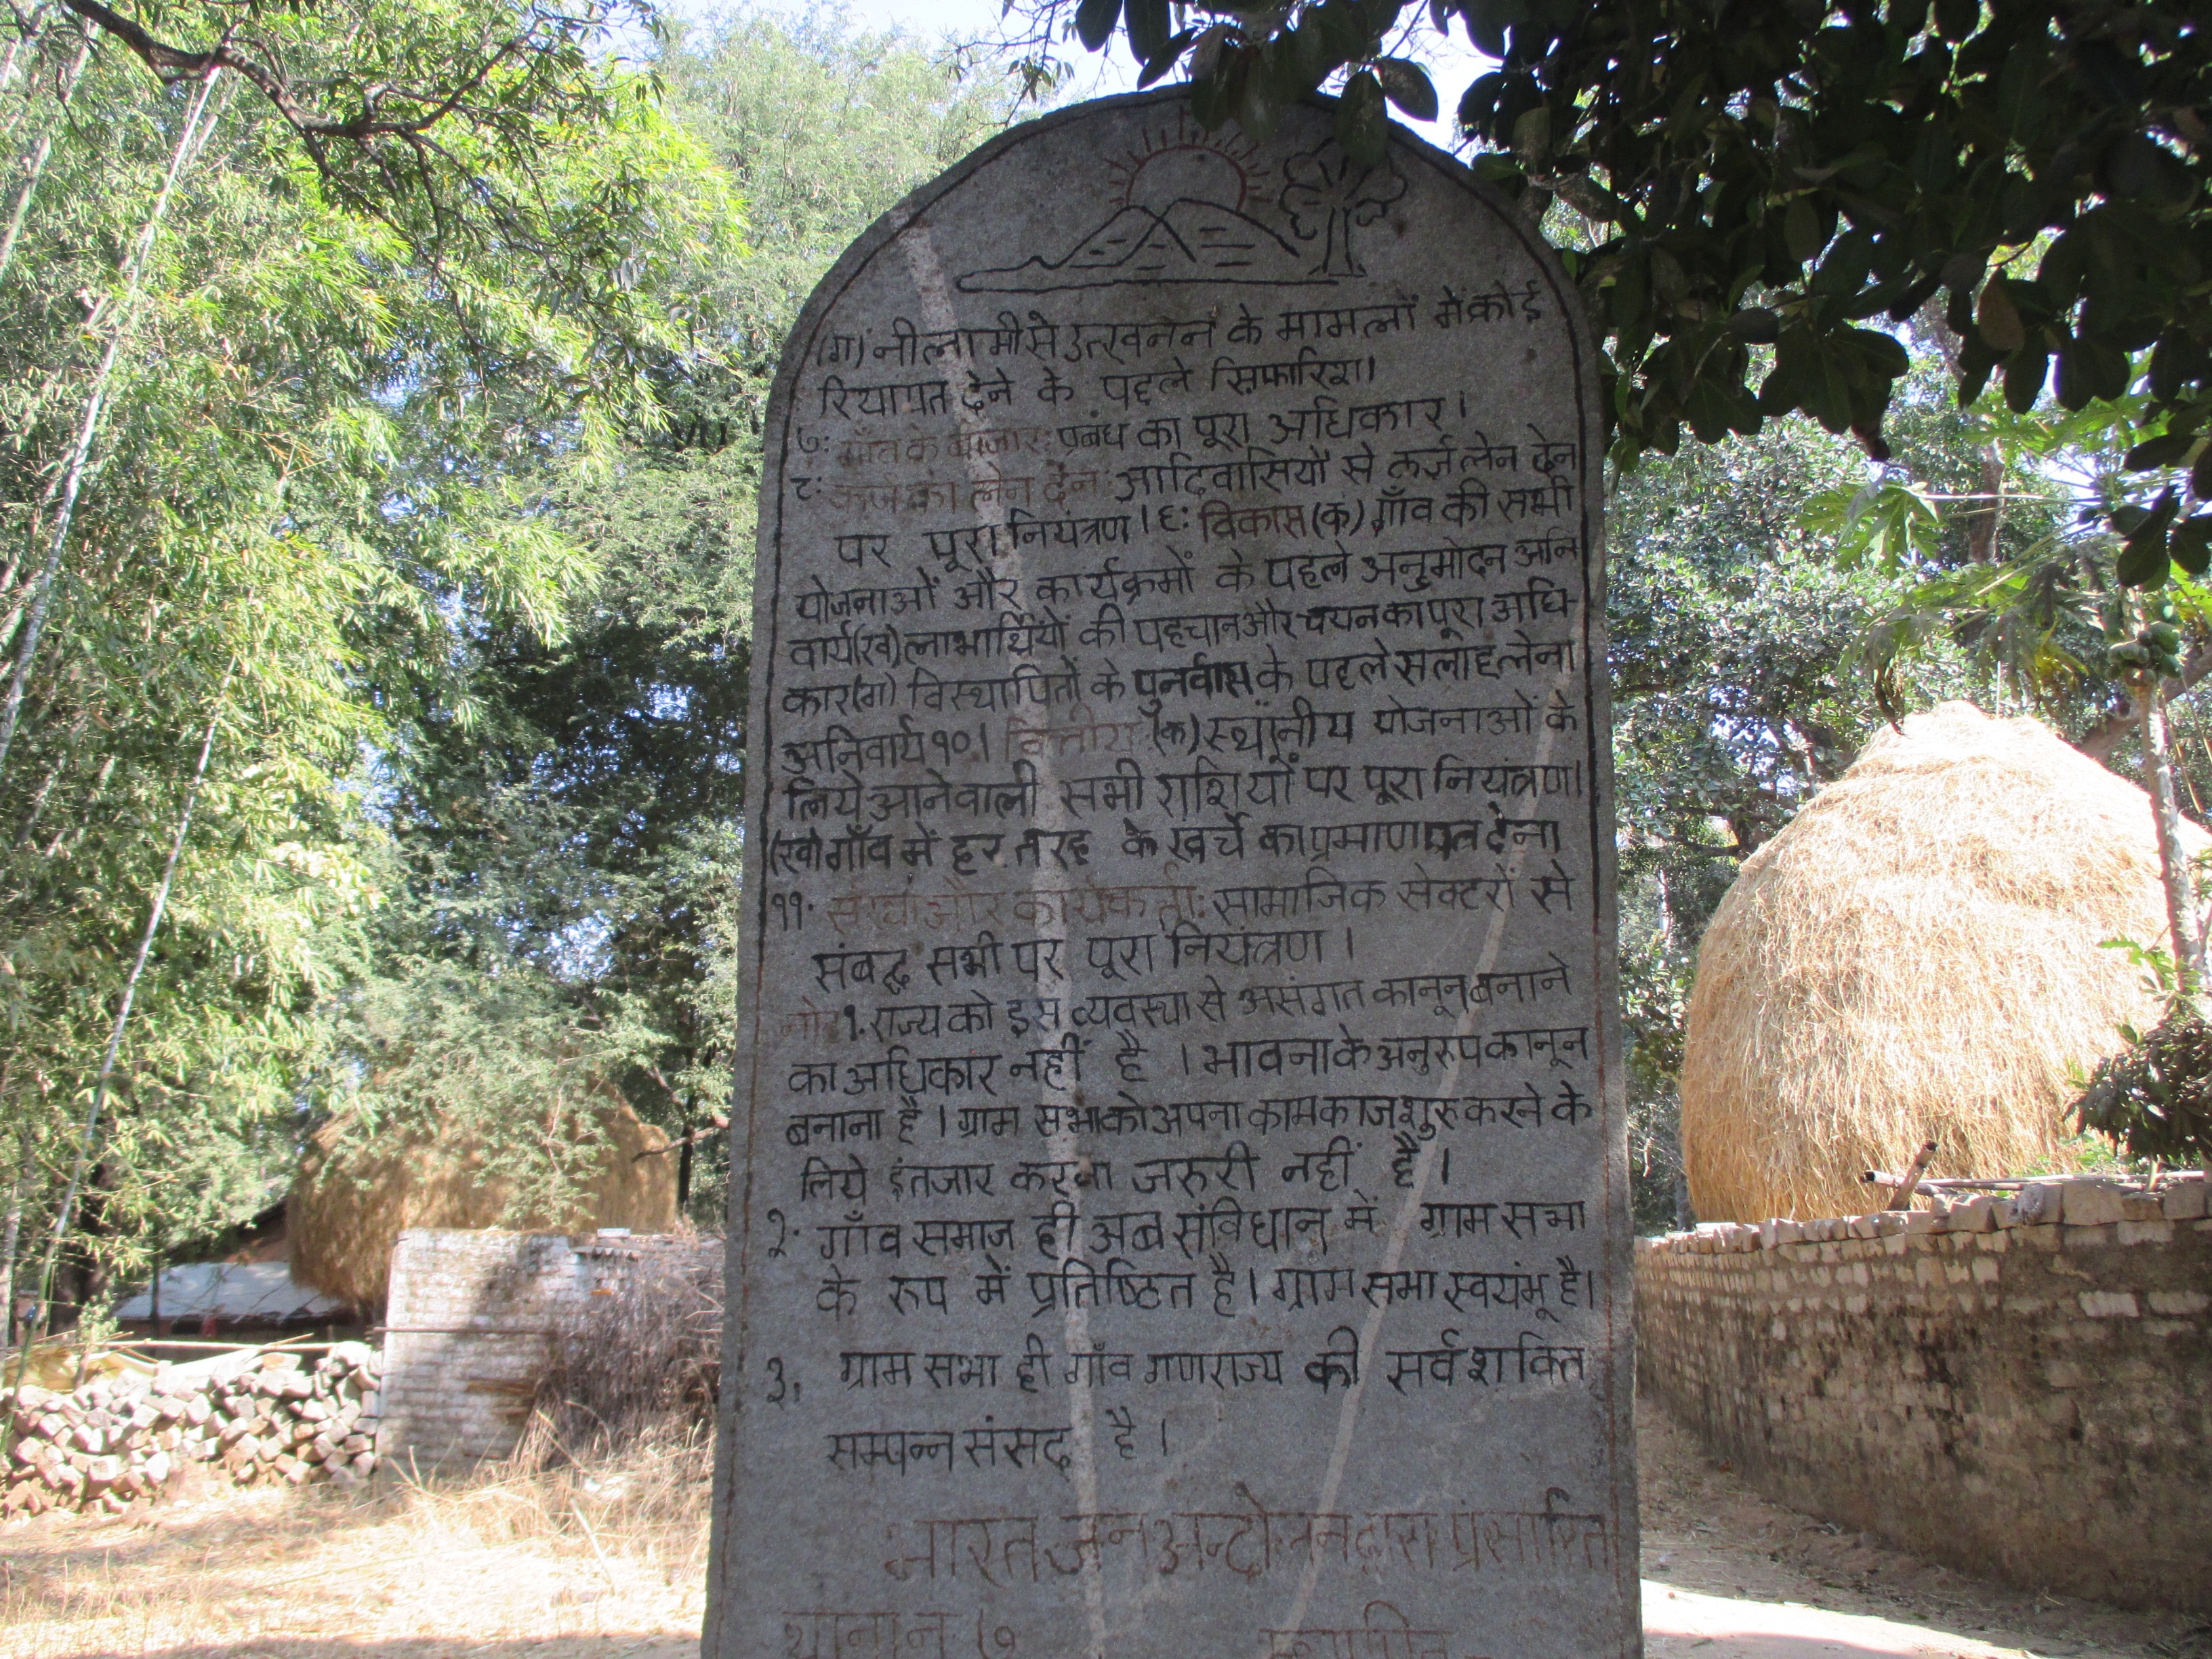 In Japud, residents have engraved Panchayat Extension to Scheduled Area (PESA) Rules on a stone in their village in Khunti, Jharkhand. Photo credit: Anumeha Yadav